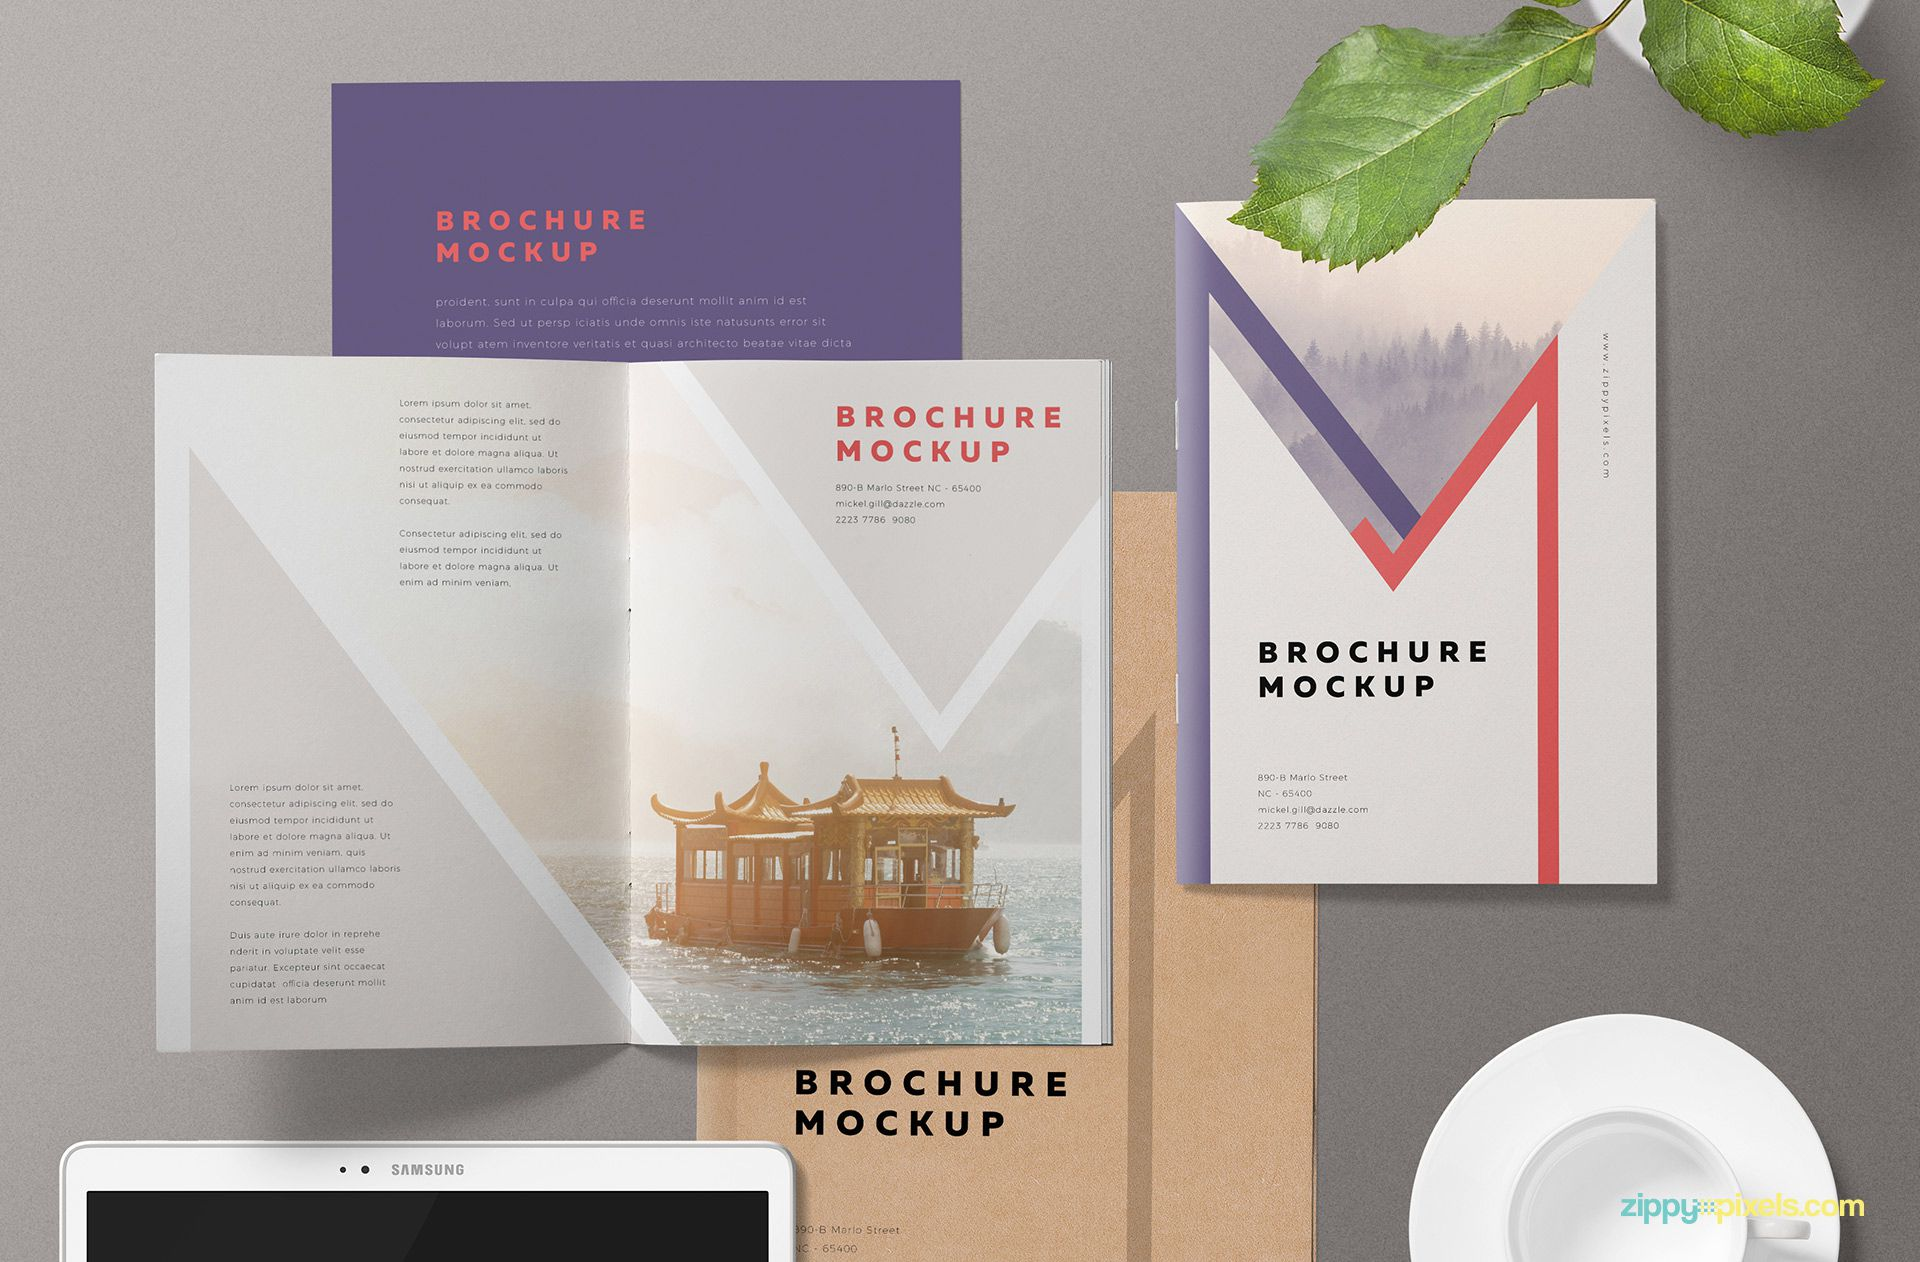 Fully customizable brochure mockup scene.